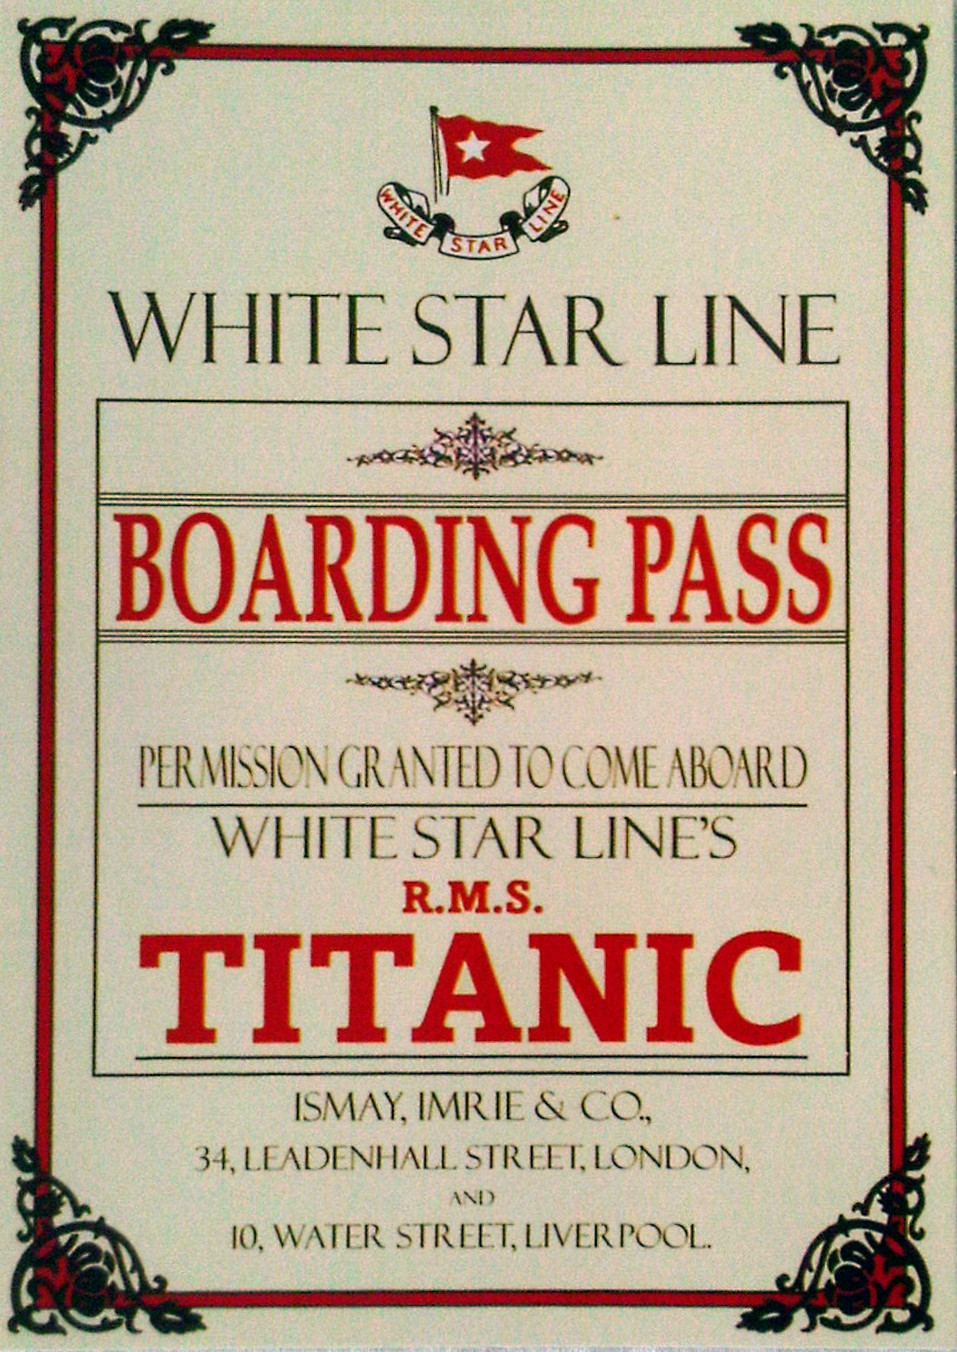 White Star Line Titanic Boarding Pass Postcards (6)